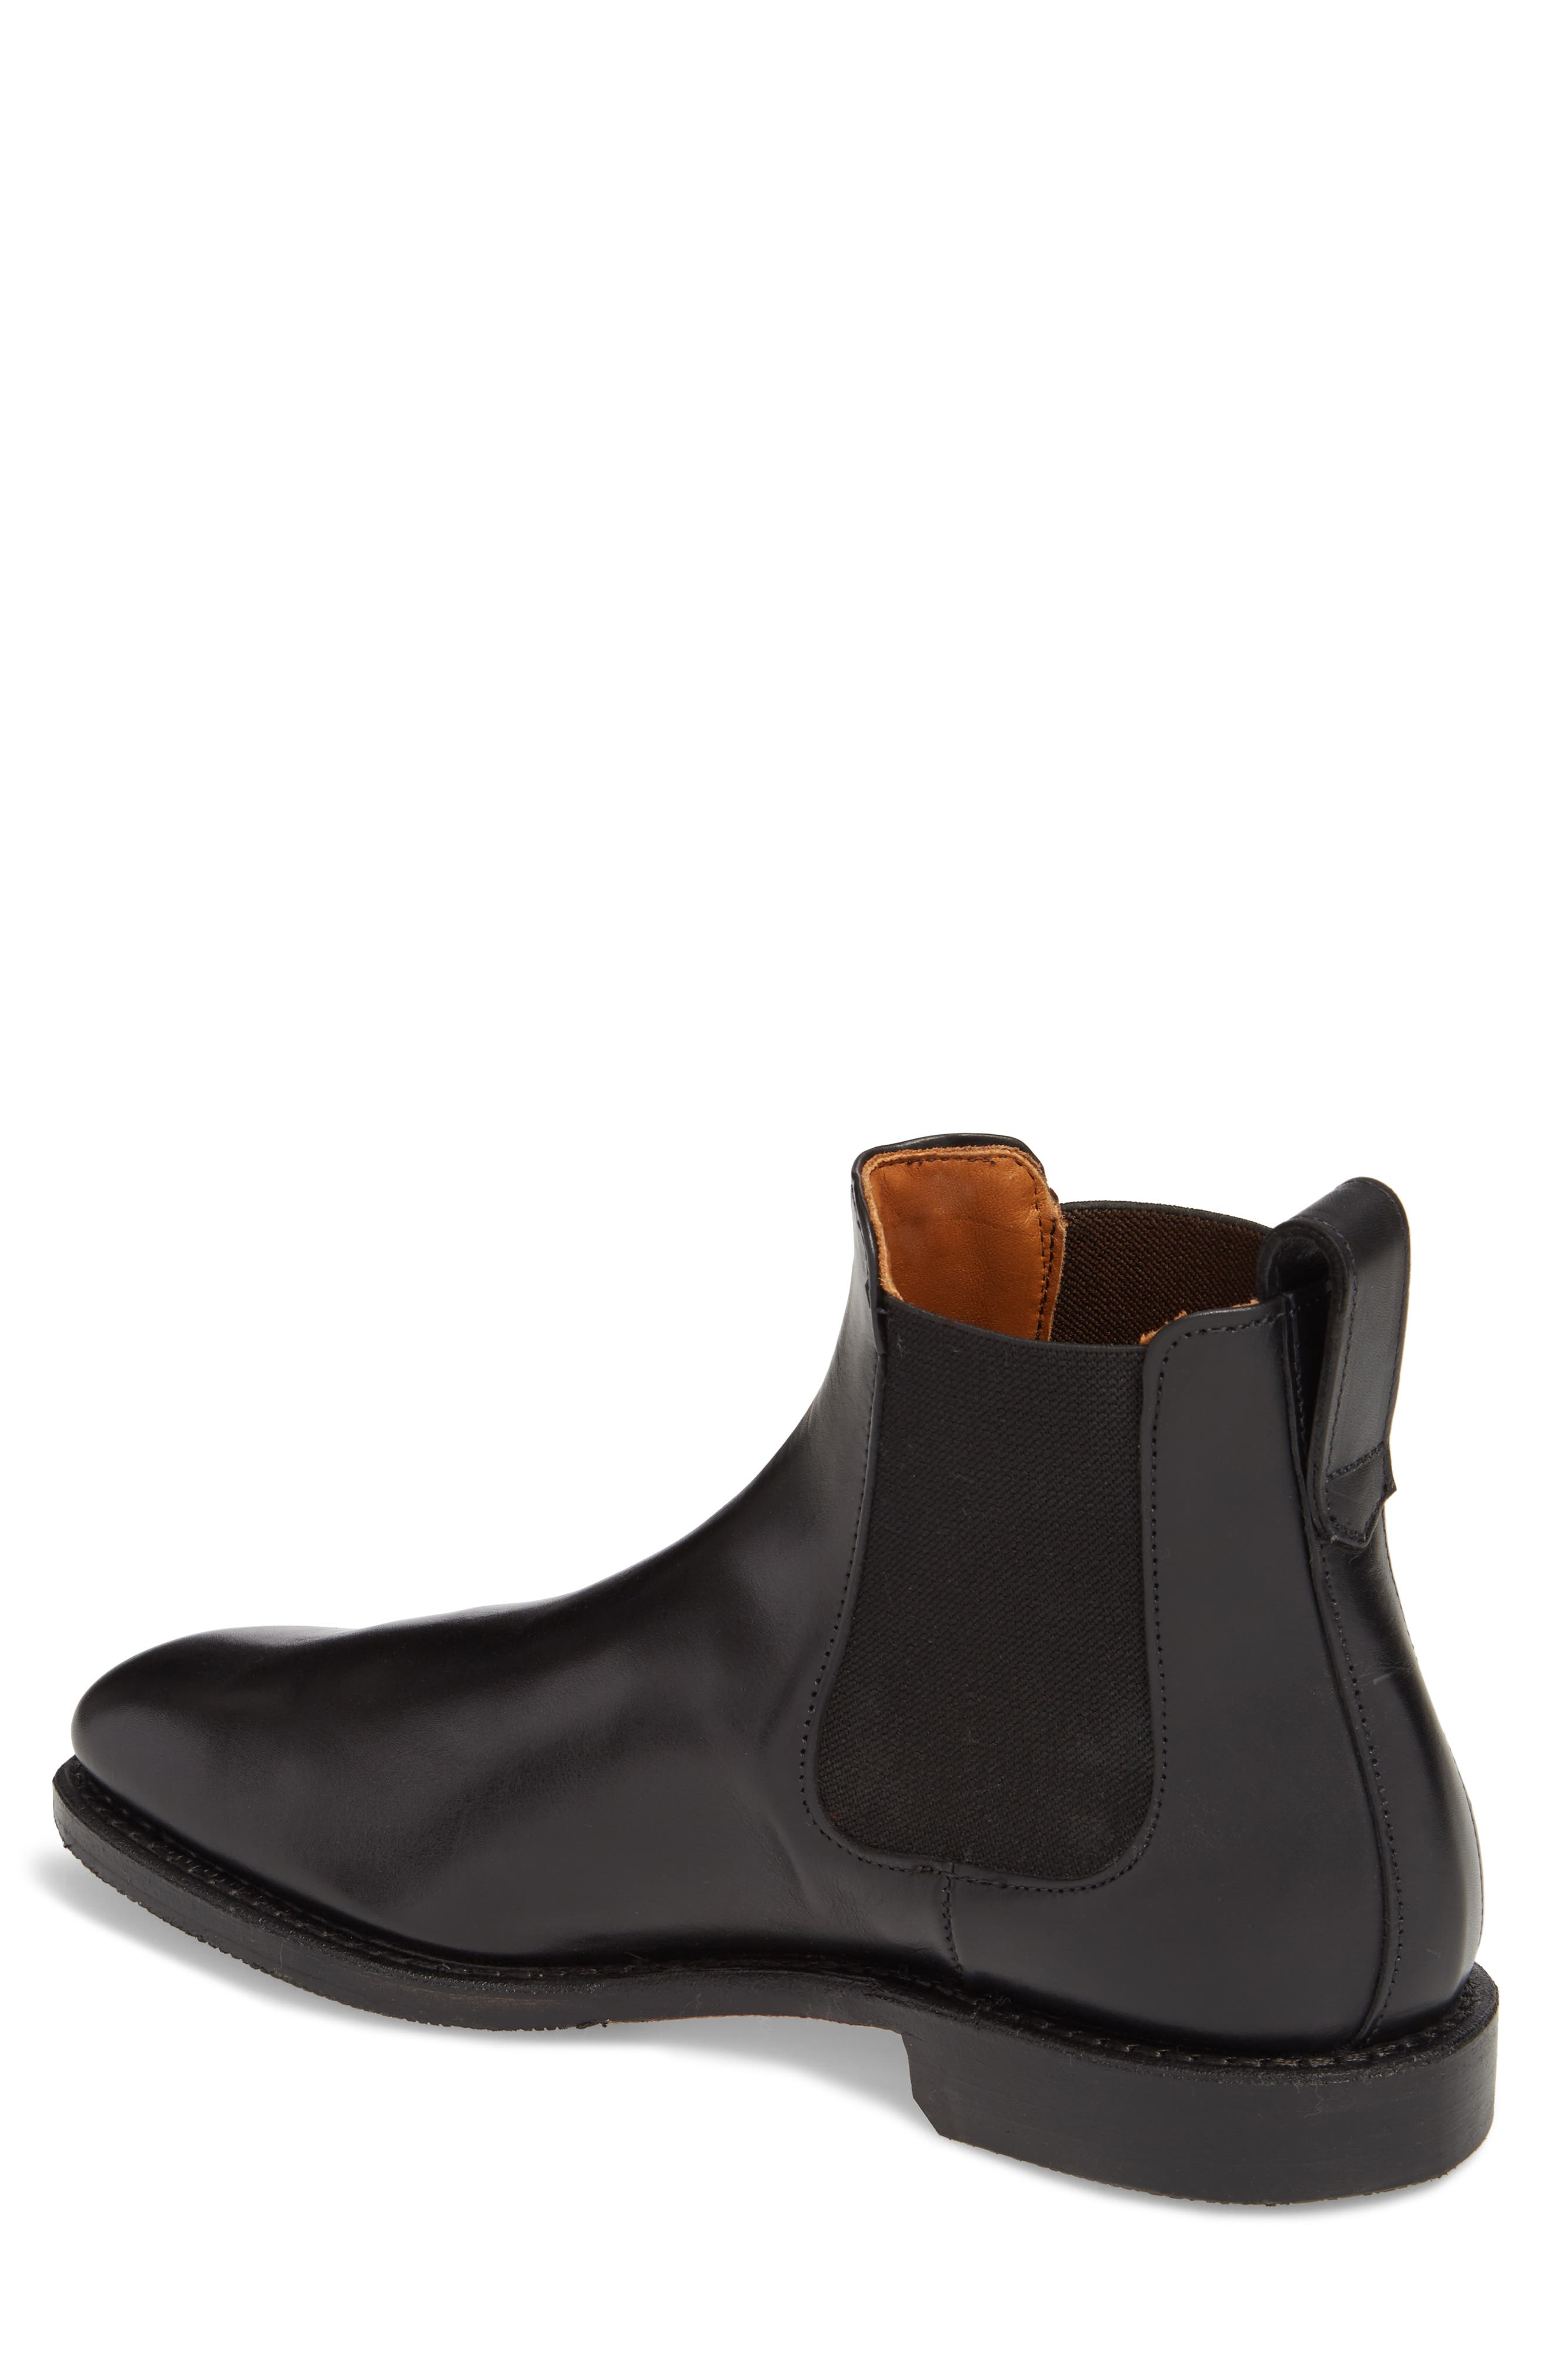 'Liverpool' Chelsea Boot,                             Alternate thumbnail 2, color,                             BLACK LEATHER